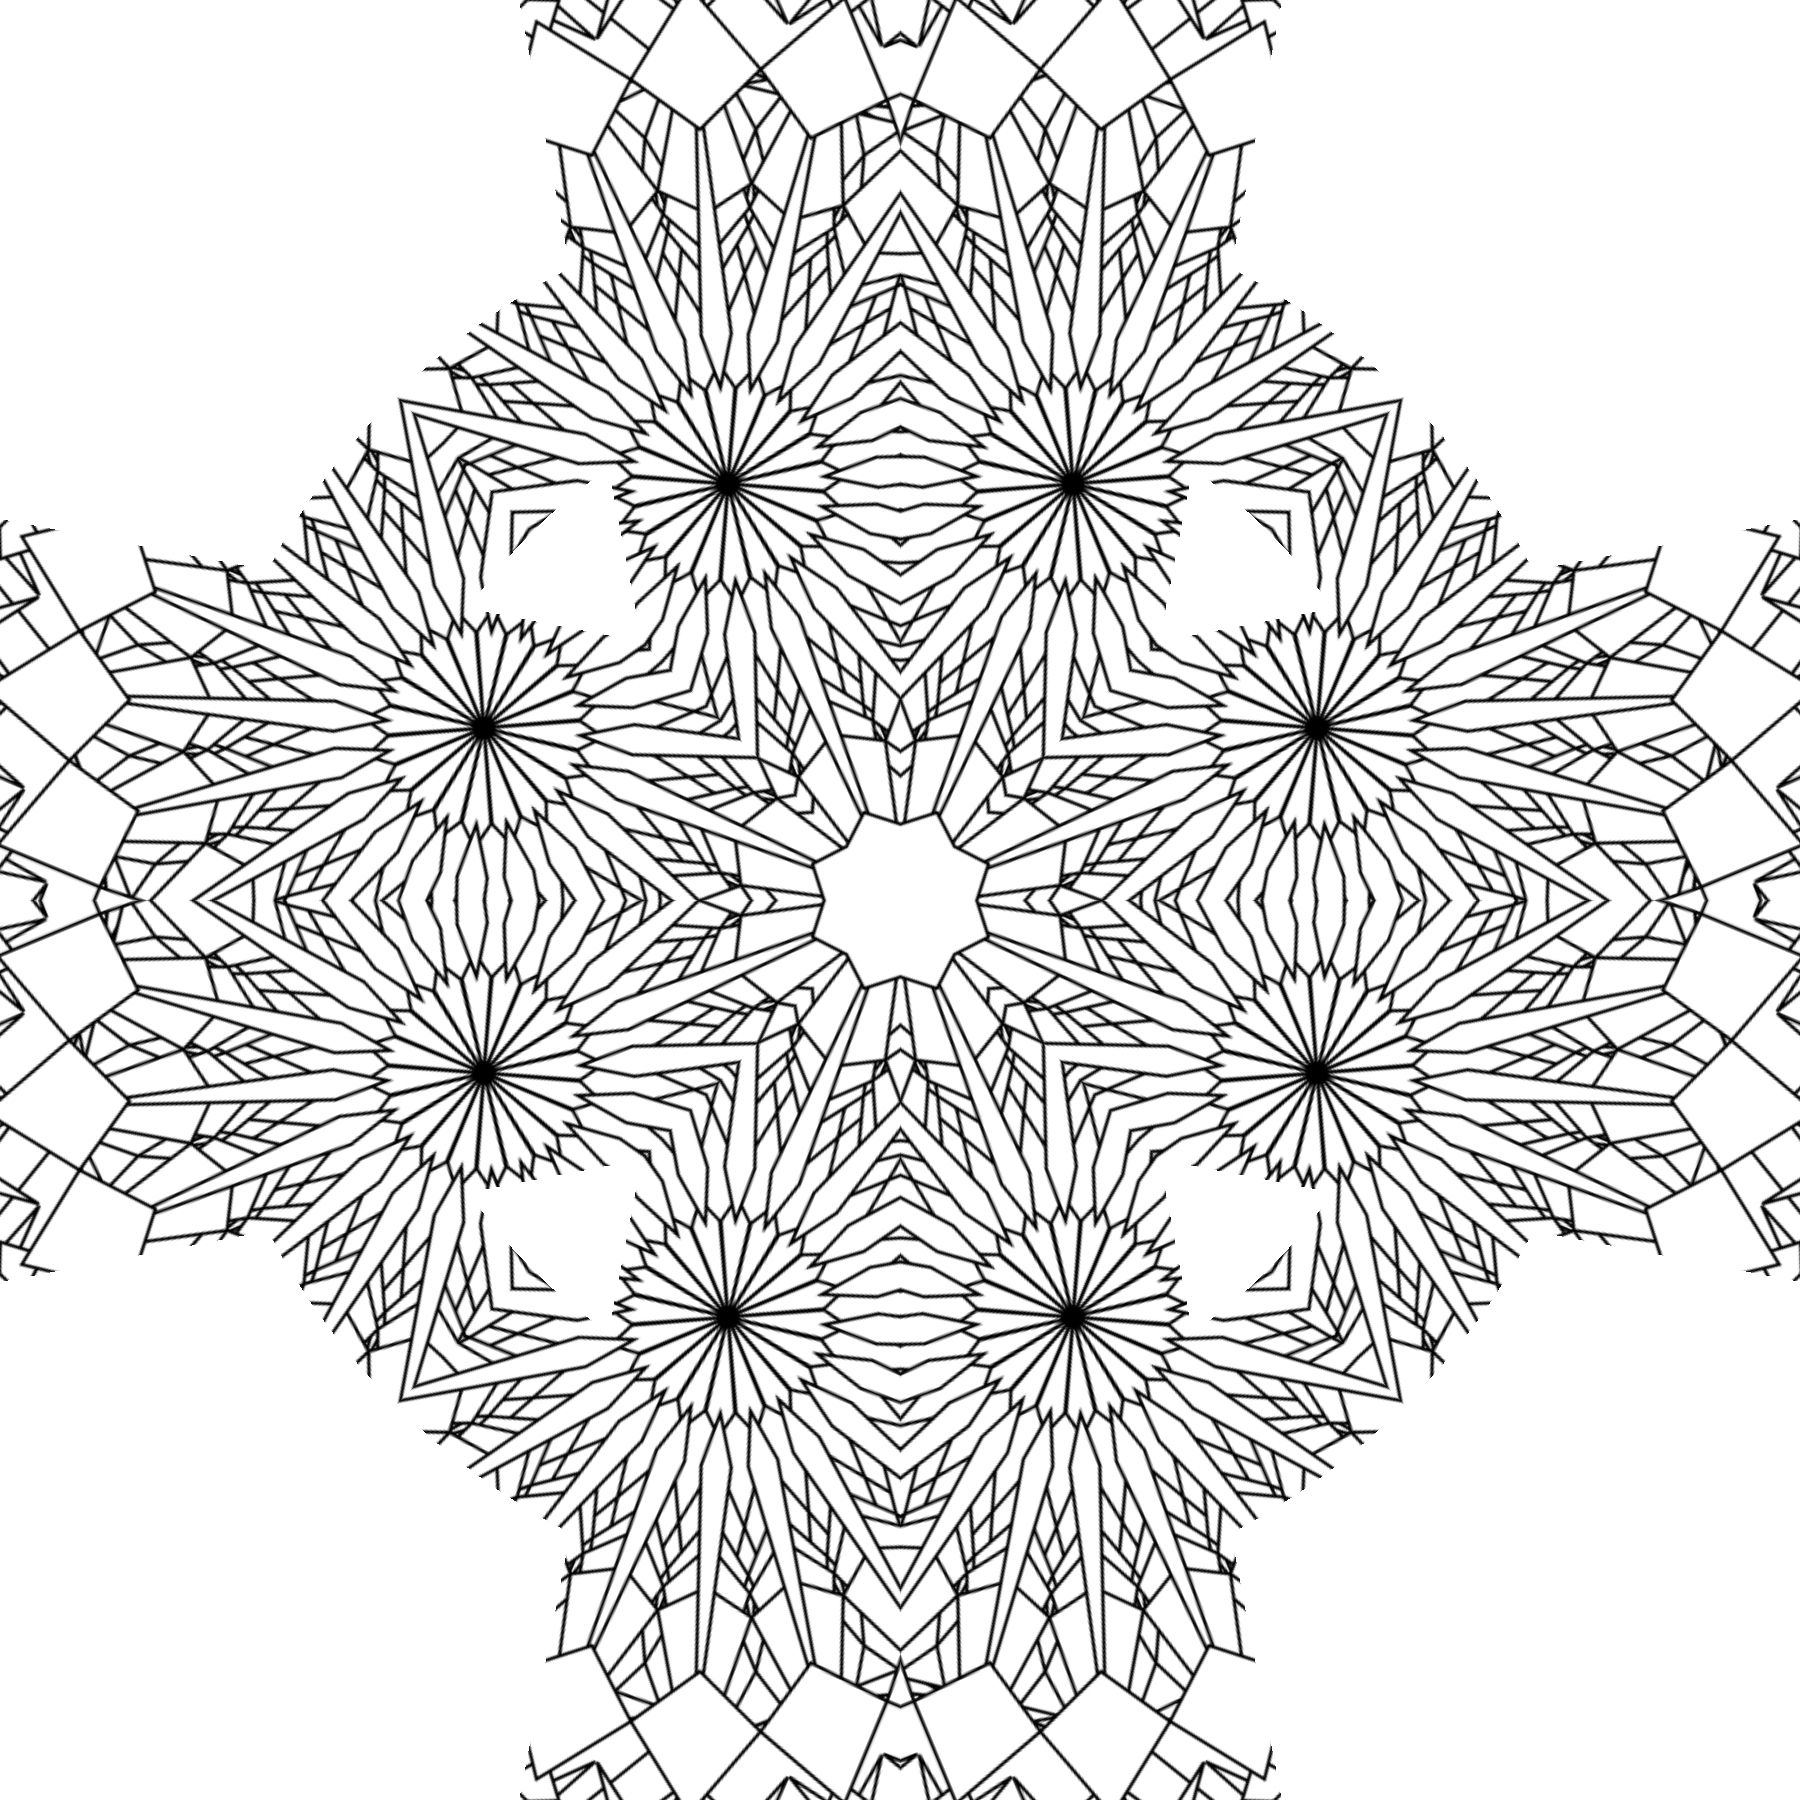 coloring pages patterns | Free Printable Abstract Coloring Pages for Adults